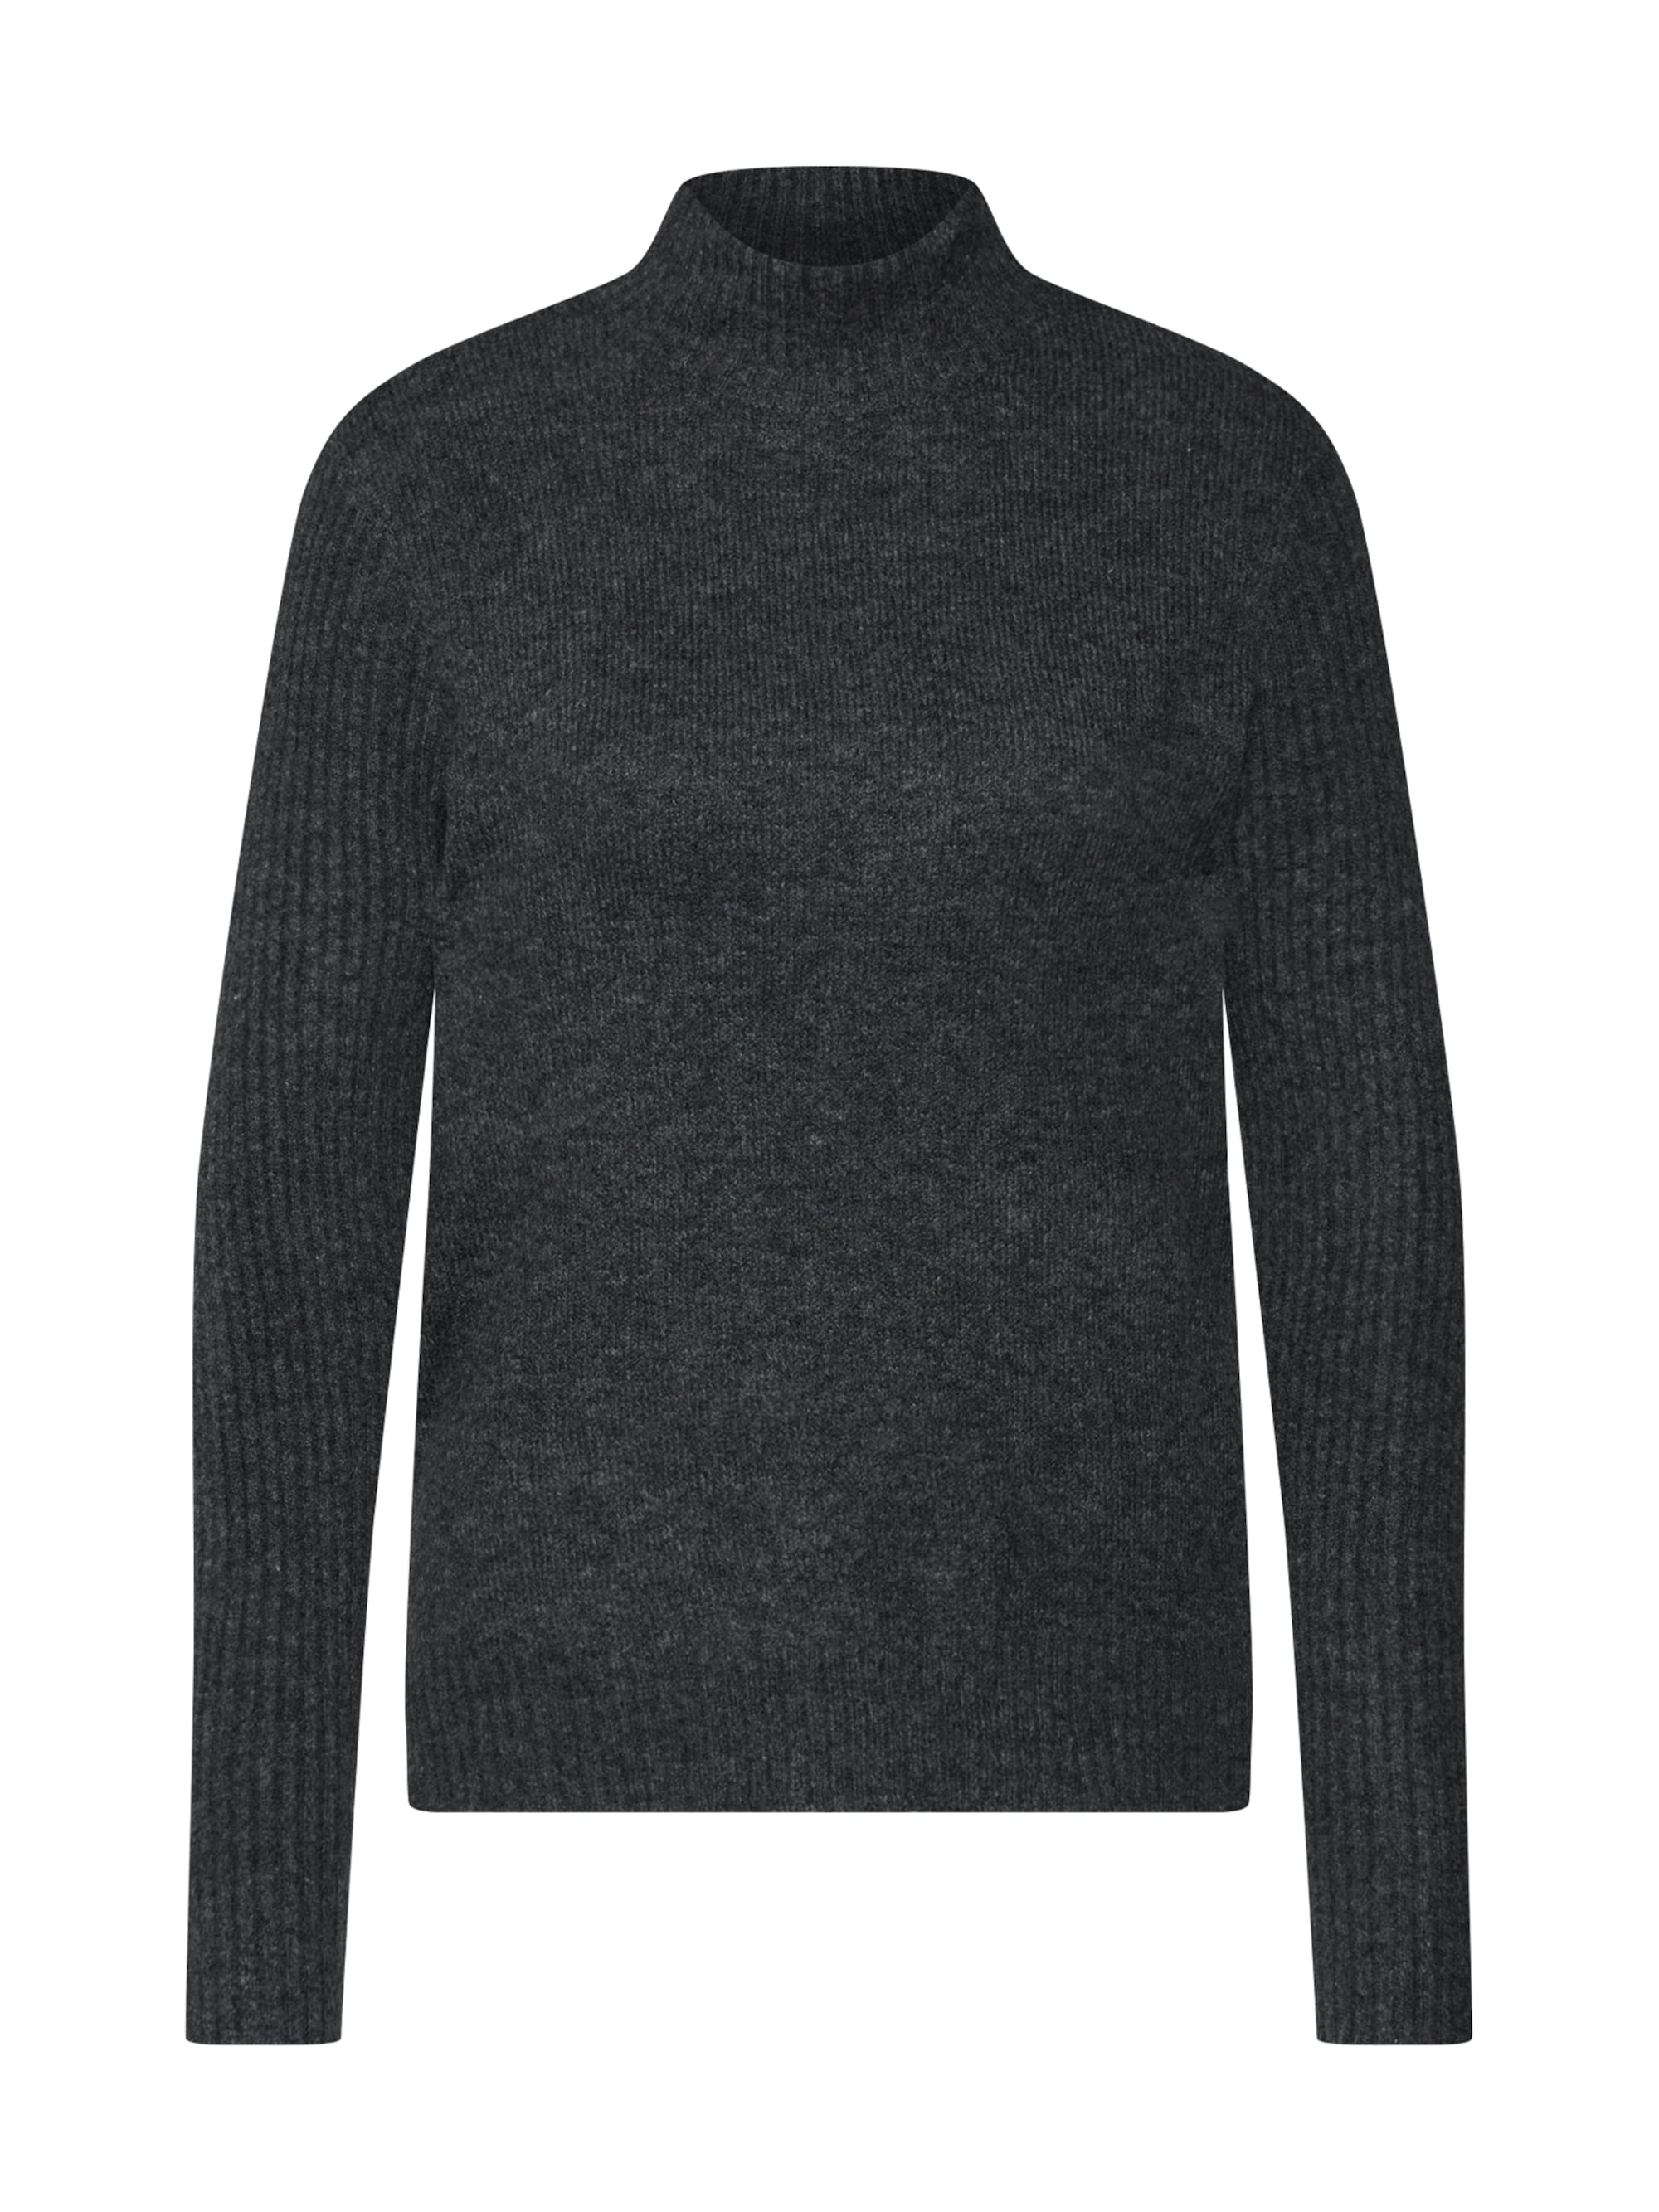 Image of Damen - Pullover & Strickjacken ´YASSOSA FUNNEL NECK KNIT PULLOVER´